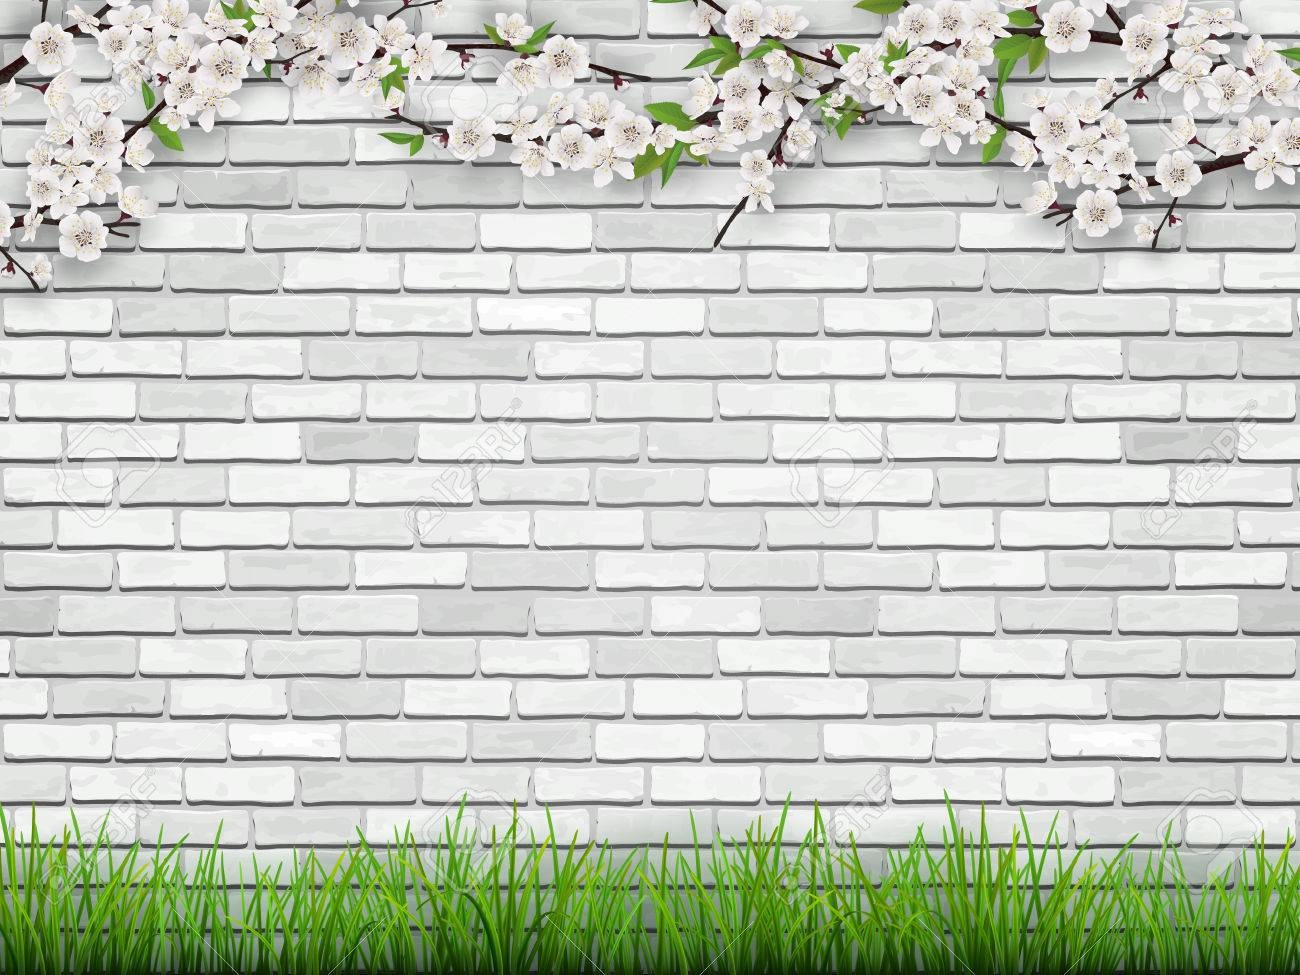 Blooming Tree Branch With Flowers And Green Leaves On White Brick Royalty Free Cliparts Vectors And Stock Illustration Image 73489172